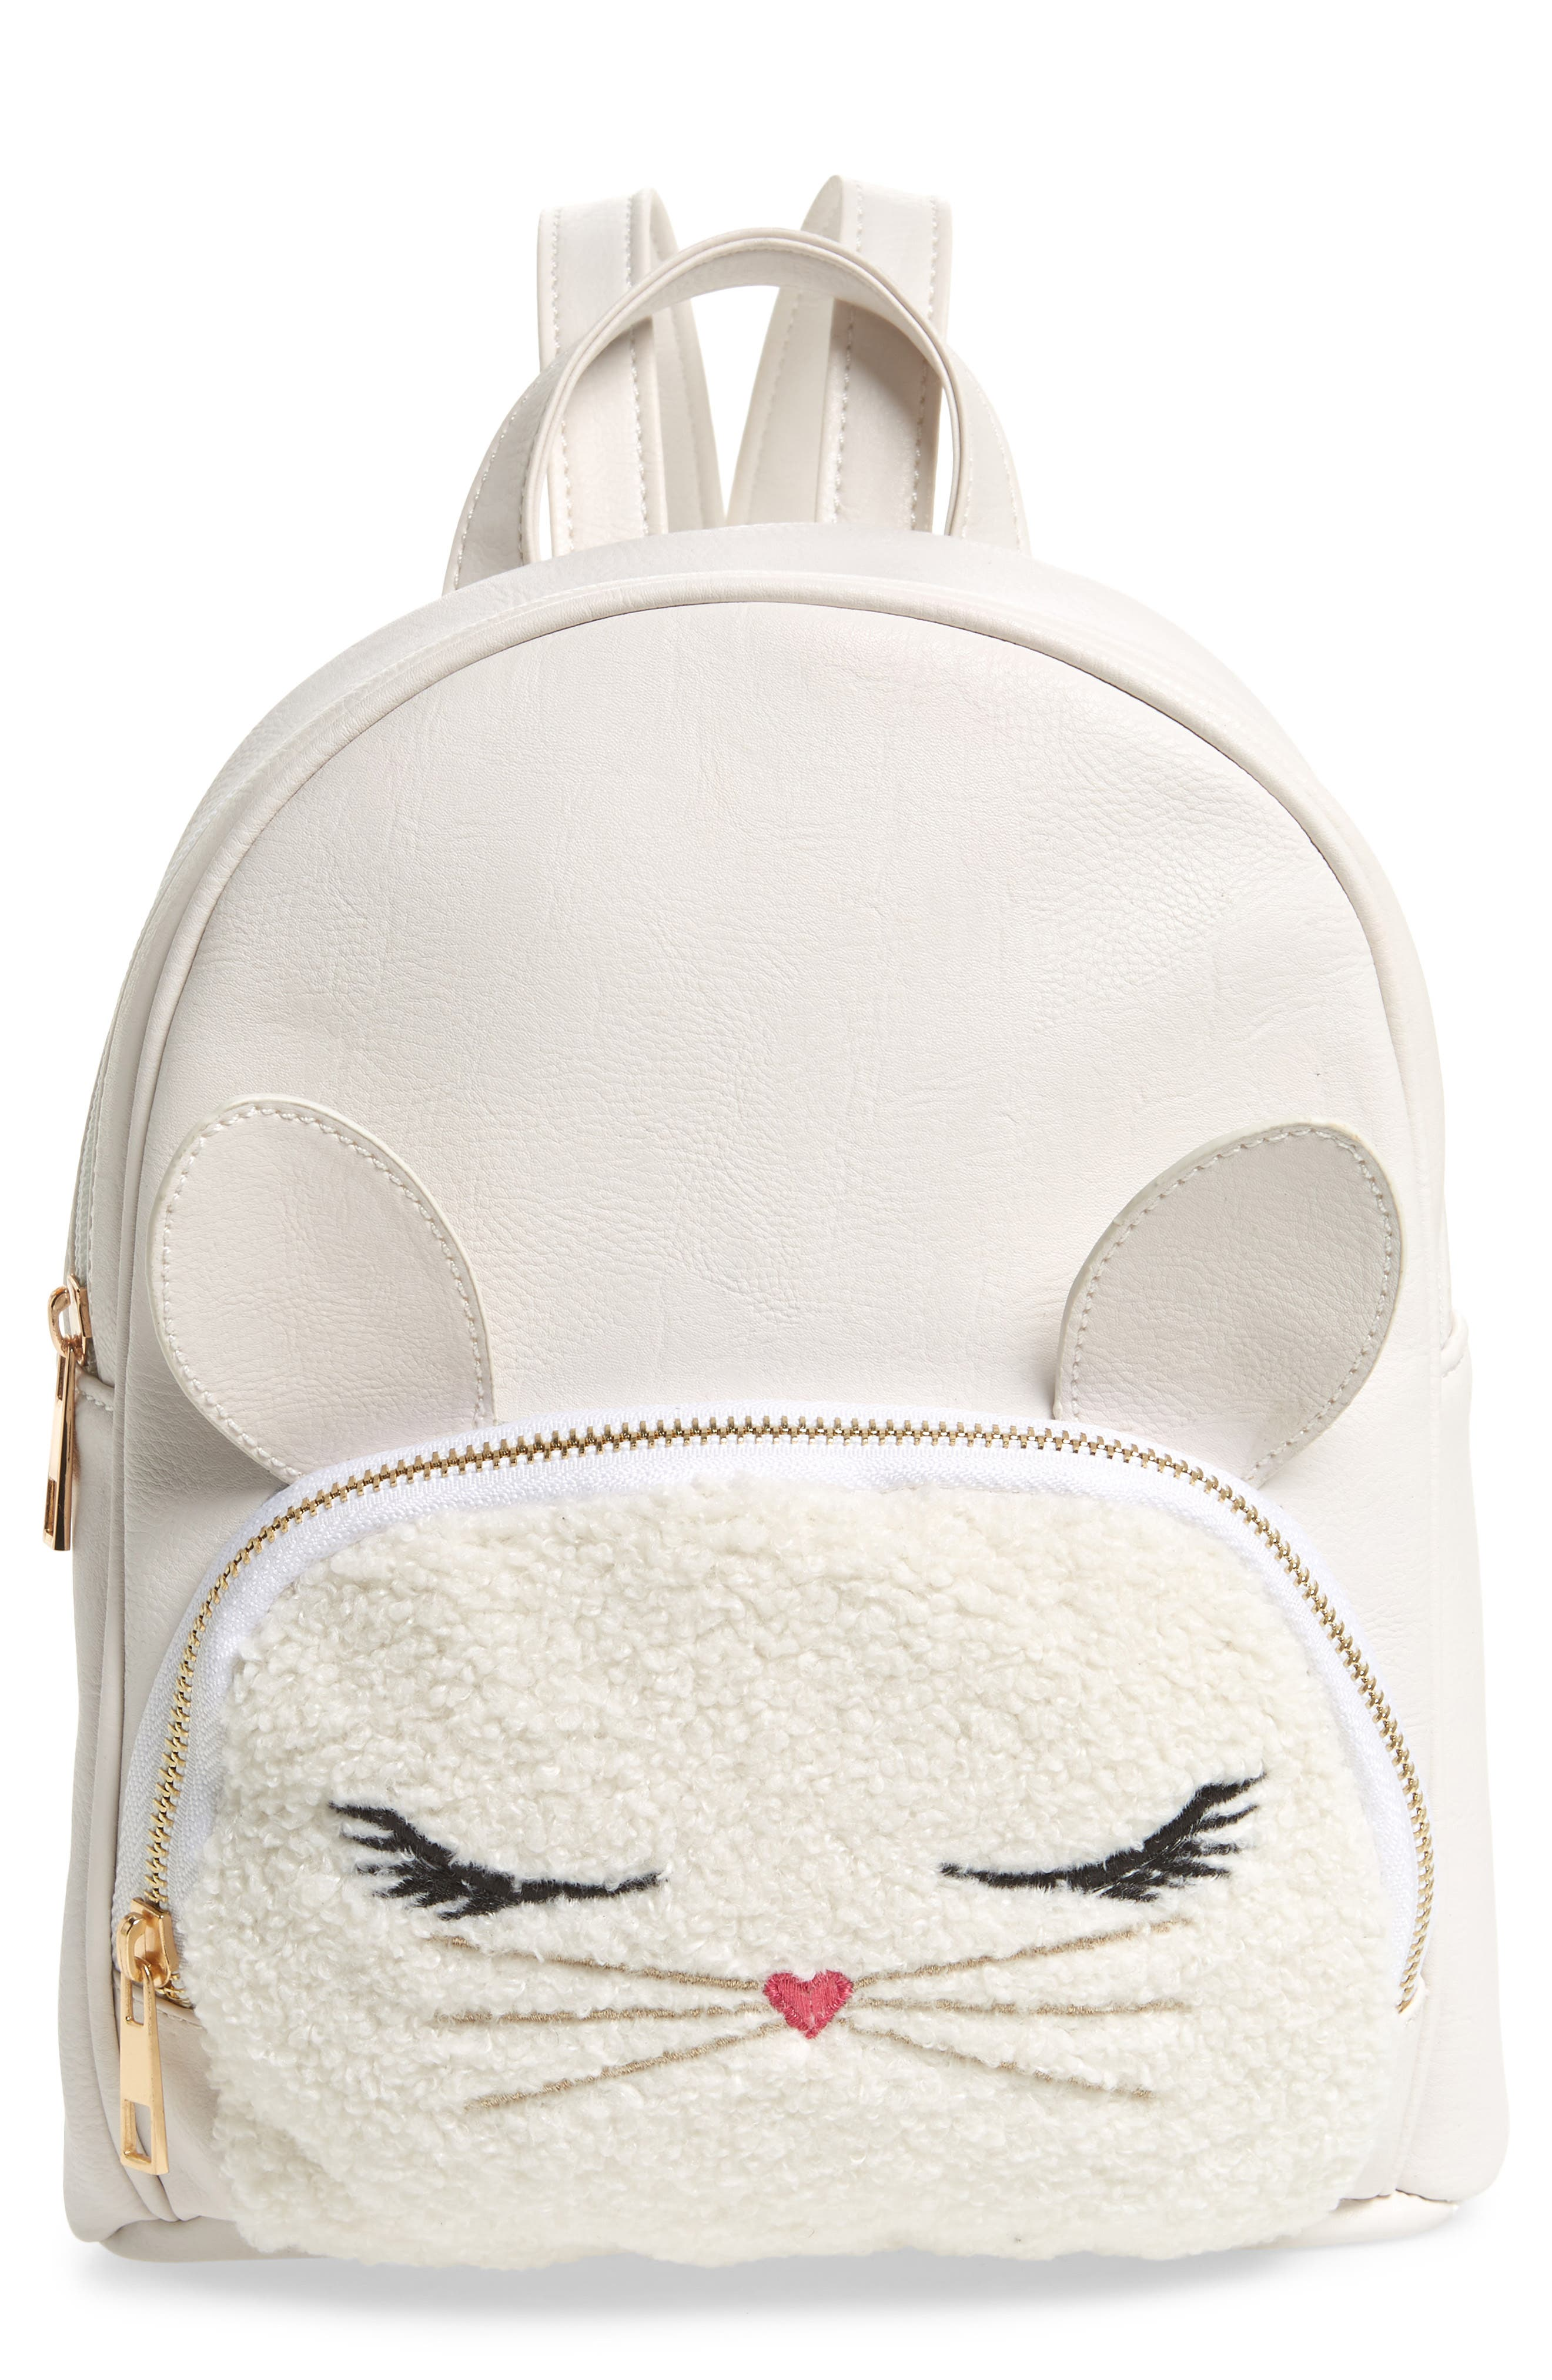 Bunny Mini Backpack,                         Main,                         color, White